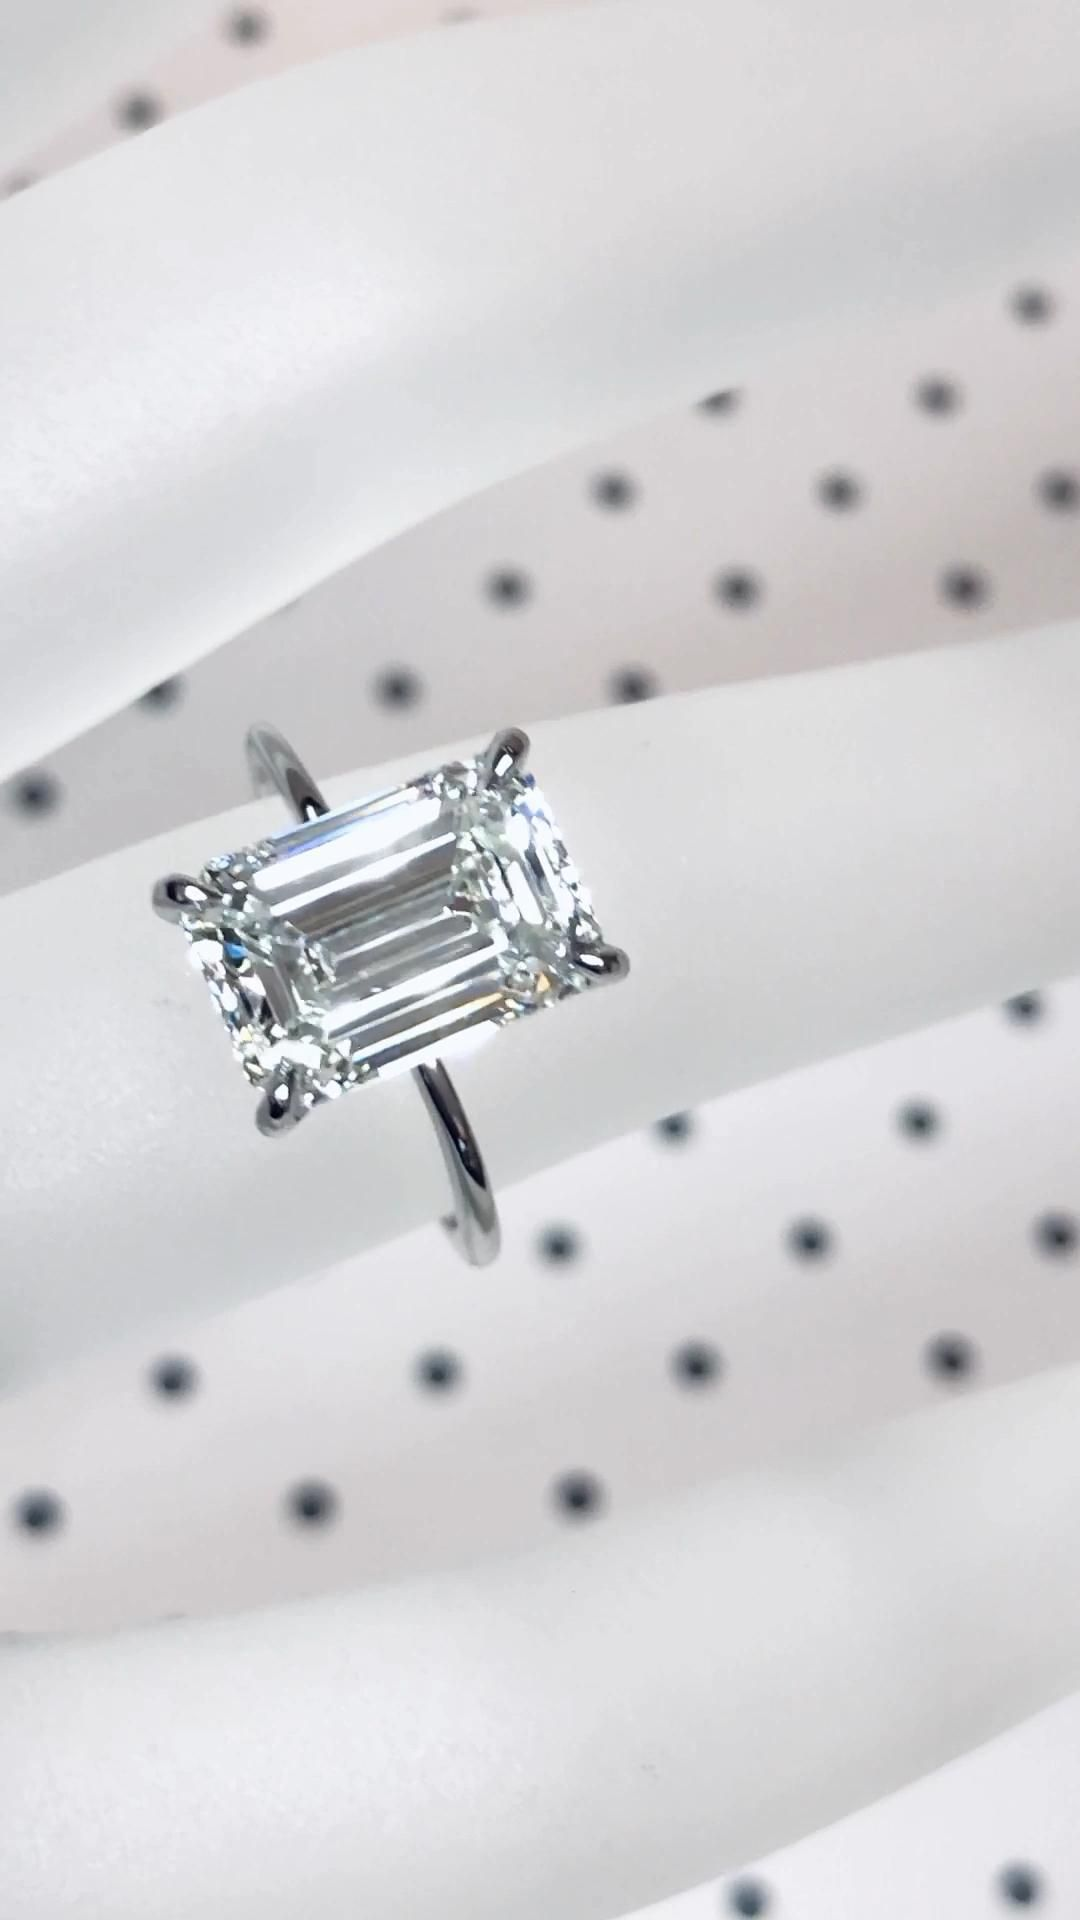 Designed with elegance and simplicity for a one of a kind ❤️ love. Featuring an emerald cut solitaire diamond engagement ring in platinum. By Ascot Diamonds Atlanta.   #ascotdiamonds #emeraldcut #solitaireengagementrings